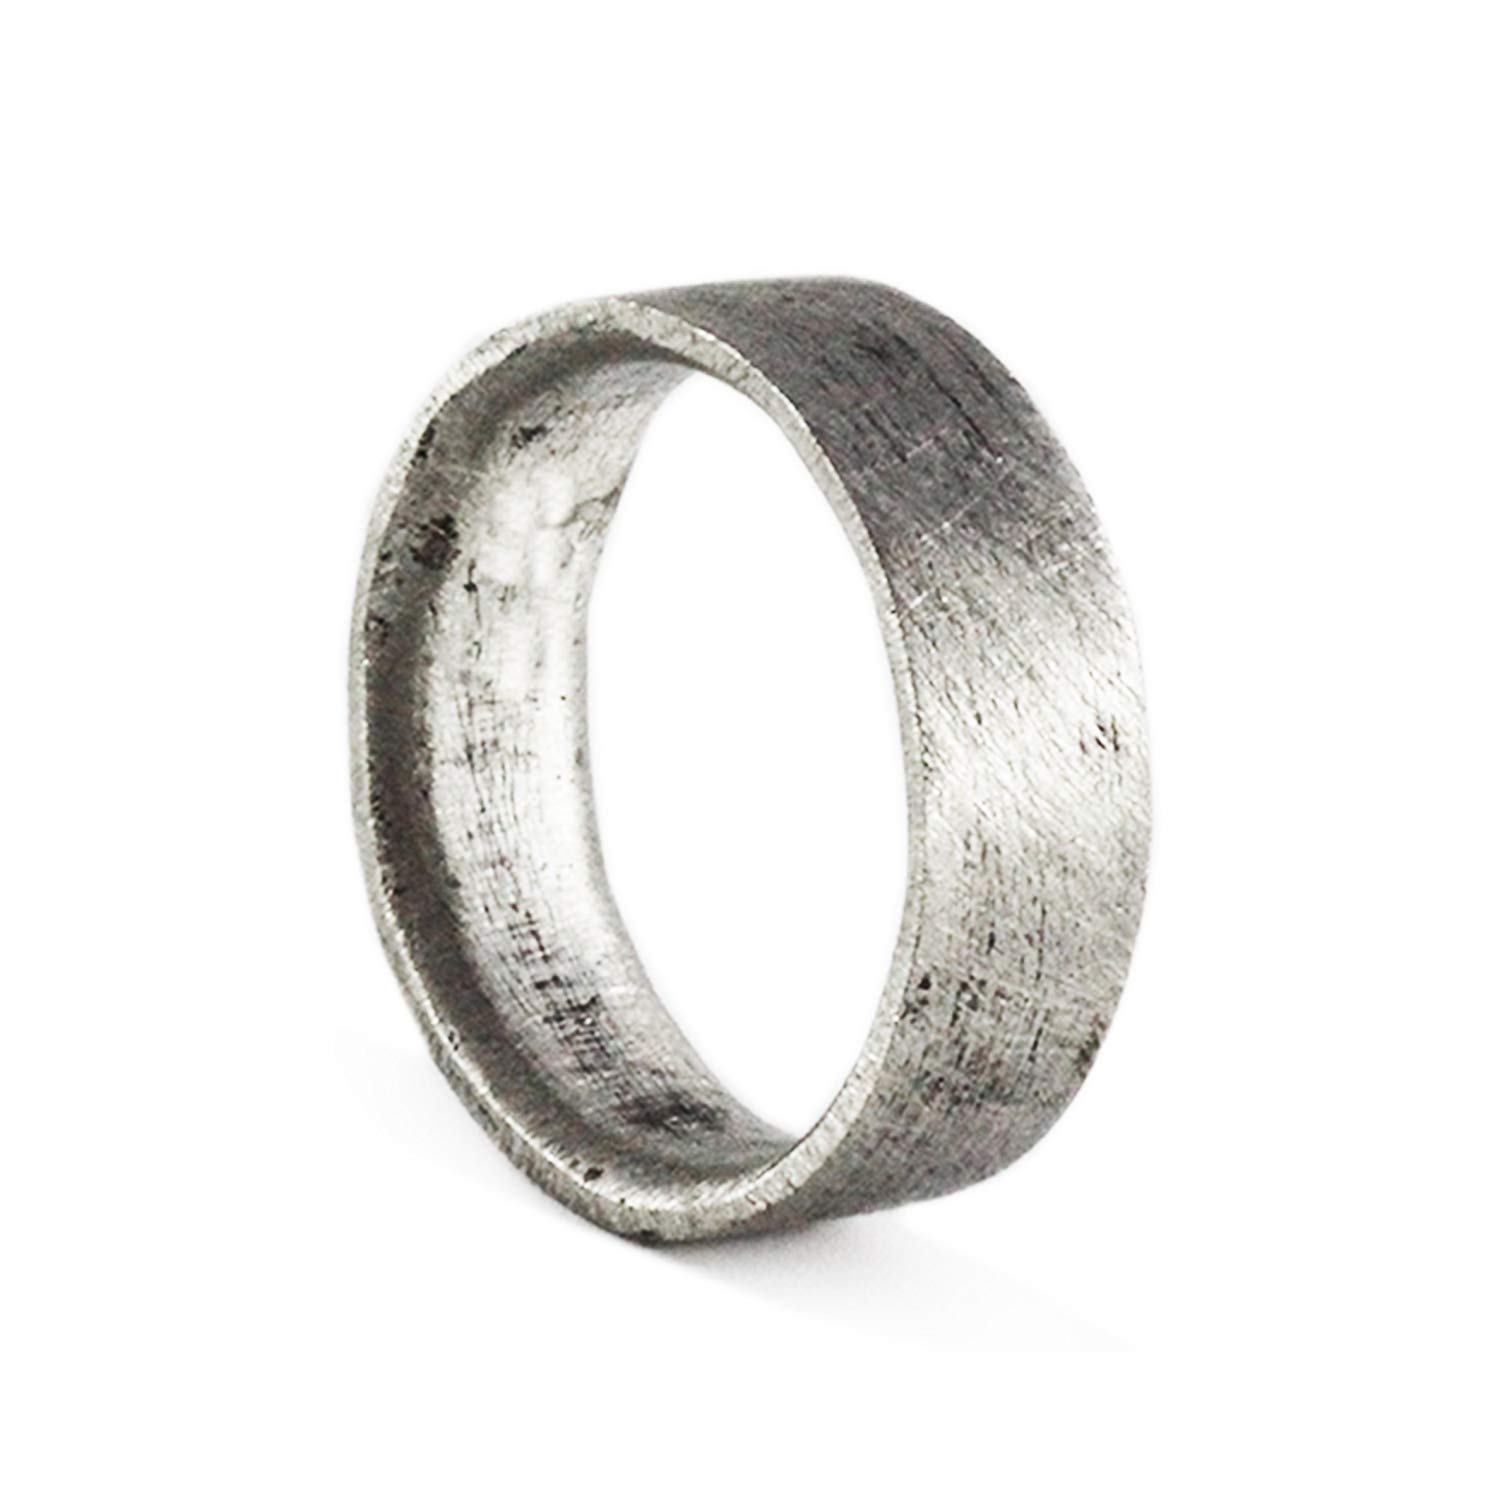 Get Quotations Rustic Wedding Ring Mens Band Oxidized Silver Personalized Engraving Man